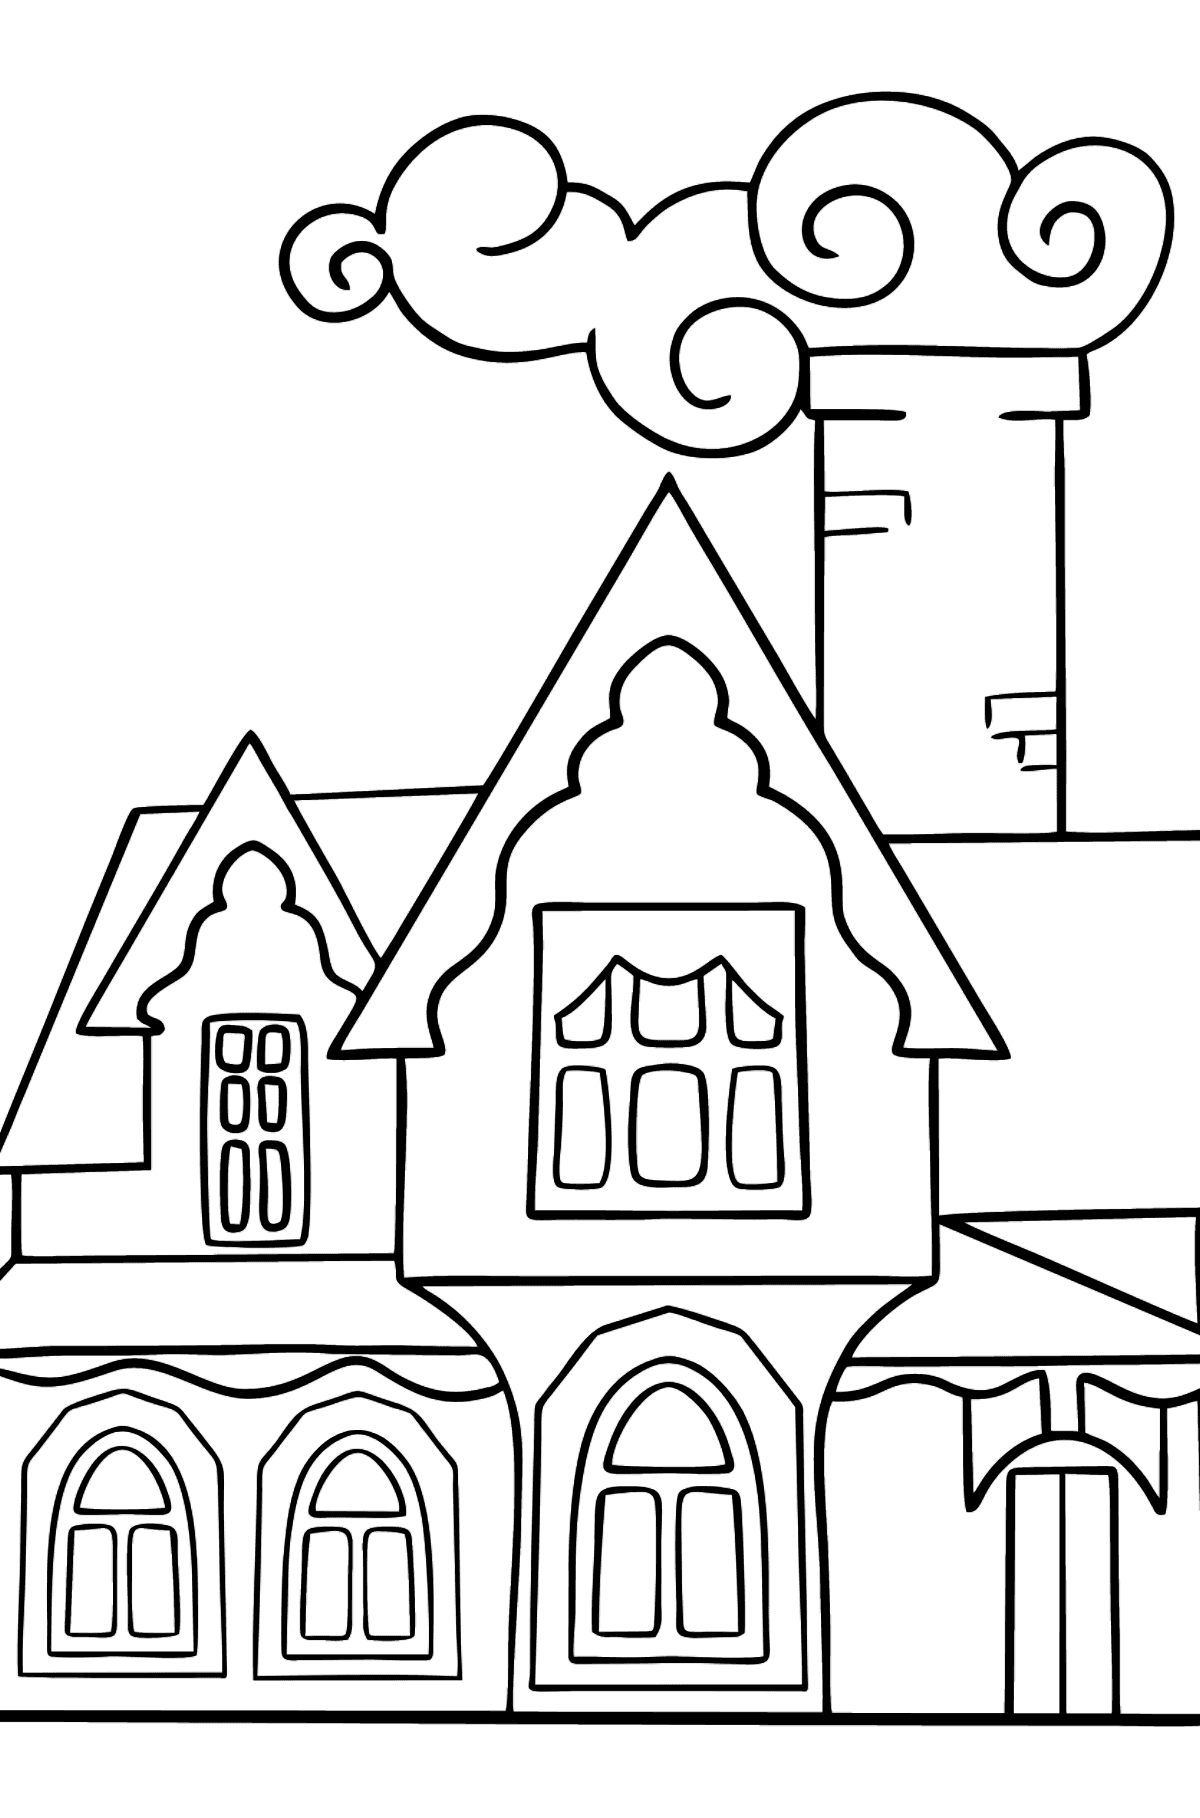 Coloring Page - A Miraculous House - Coloring Pages for Kids